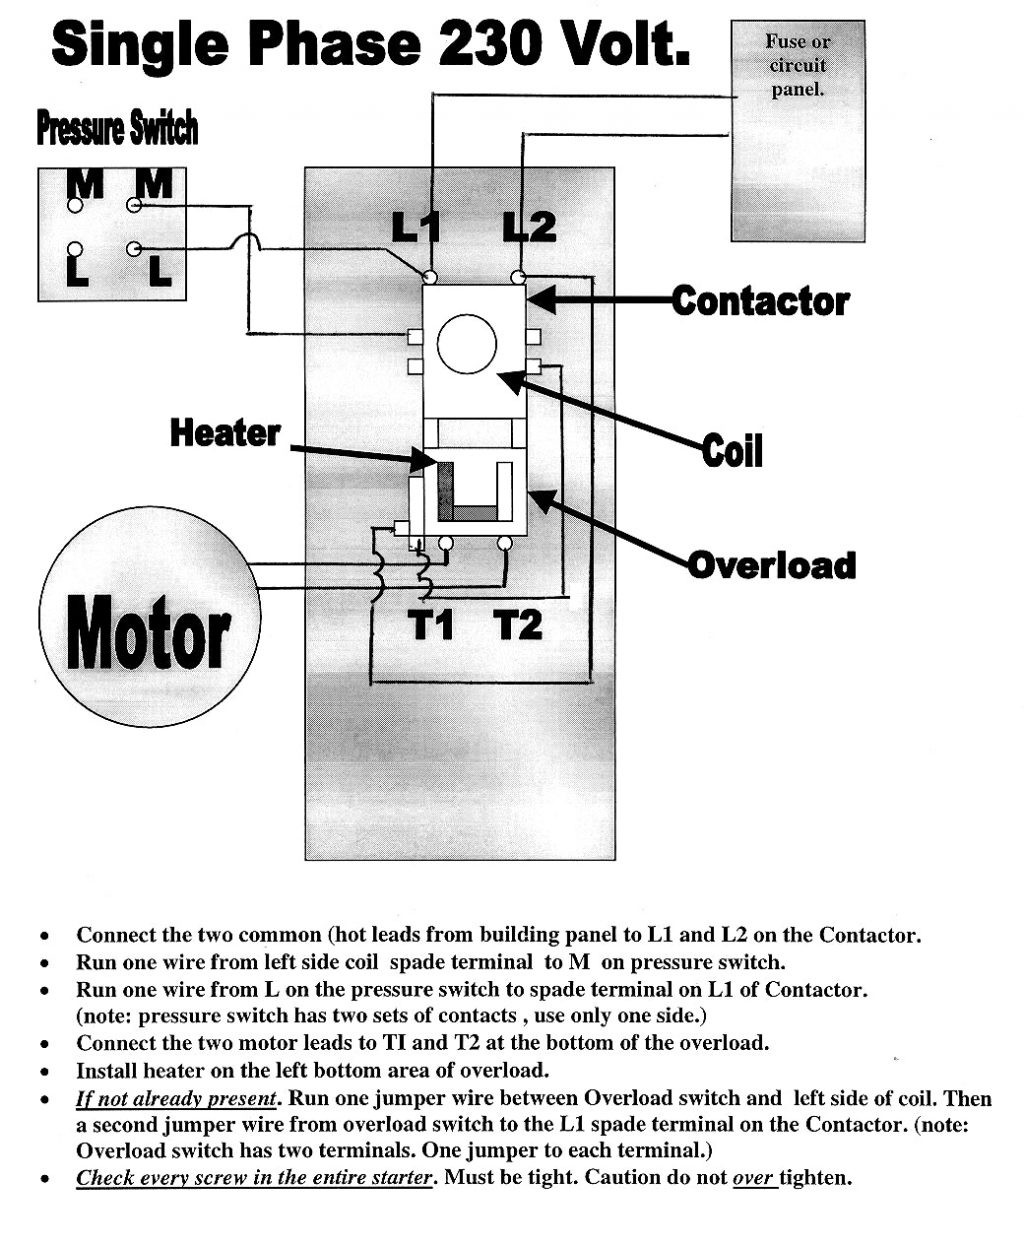 Wiring Diagram For 230 Volt Outlet Free Download Wiring Diagram ...